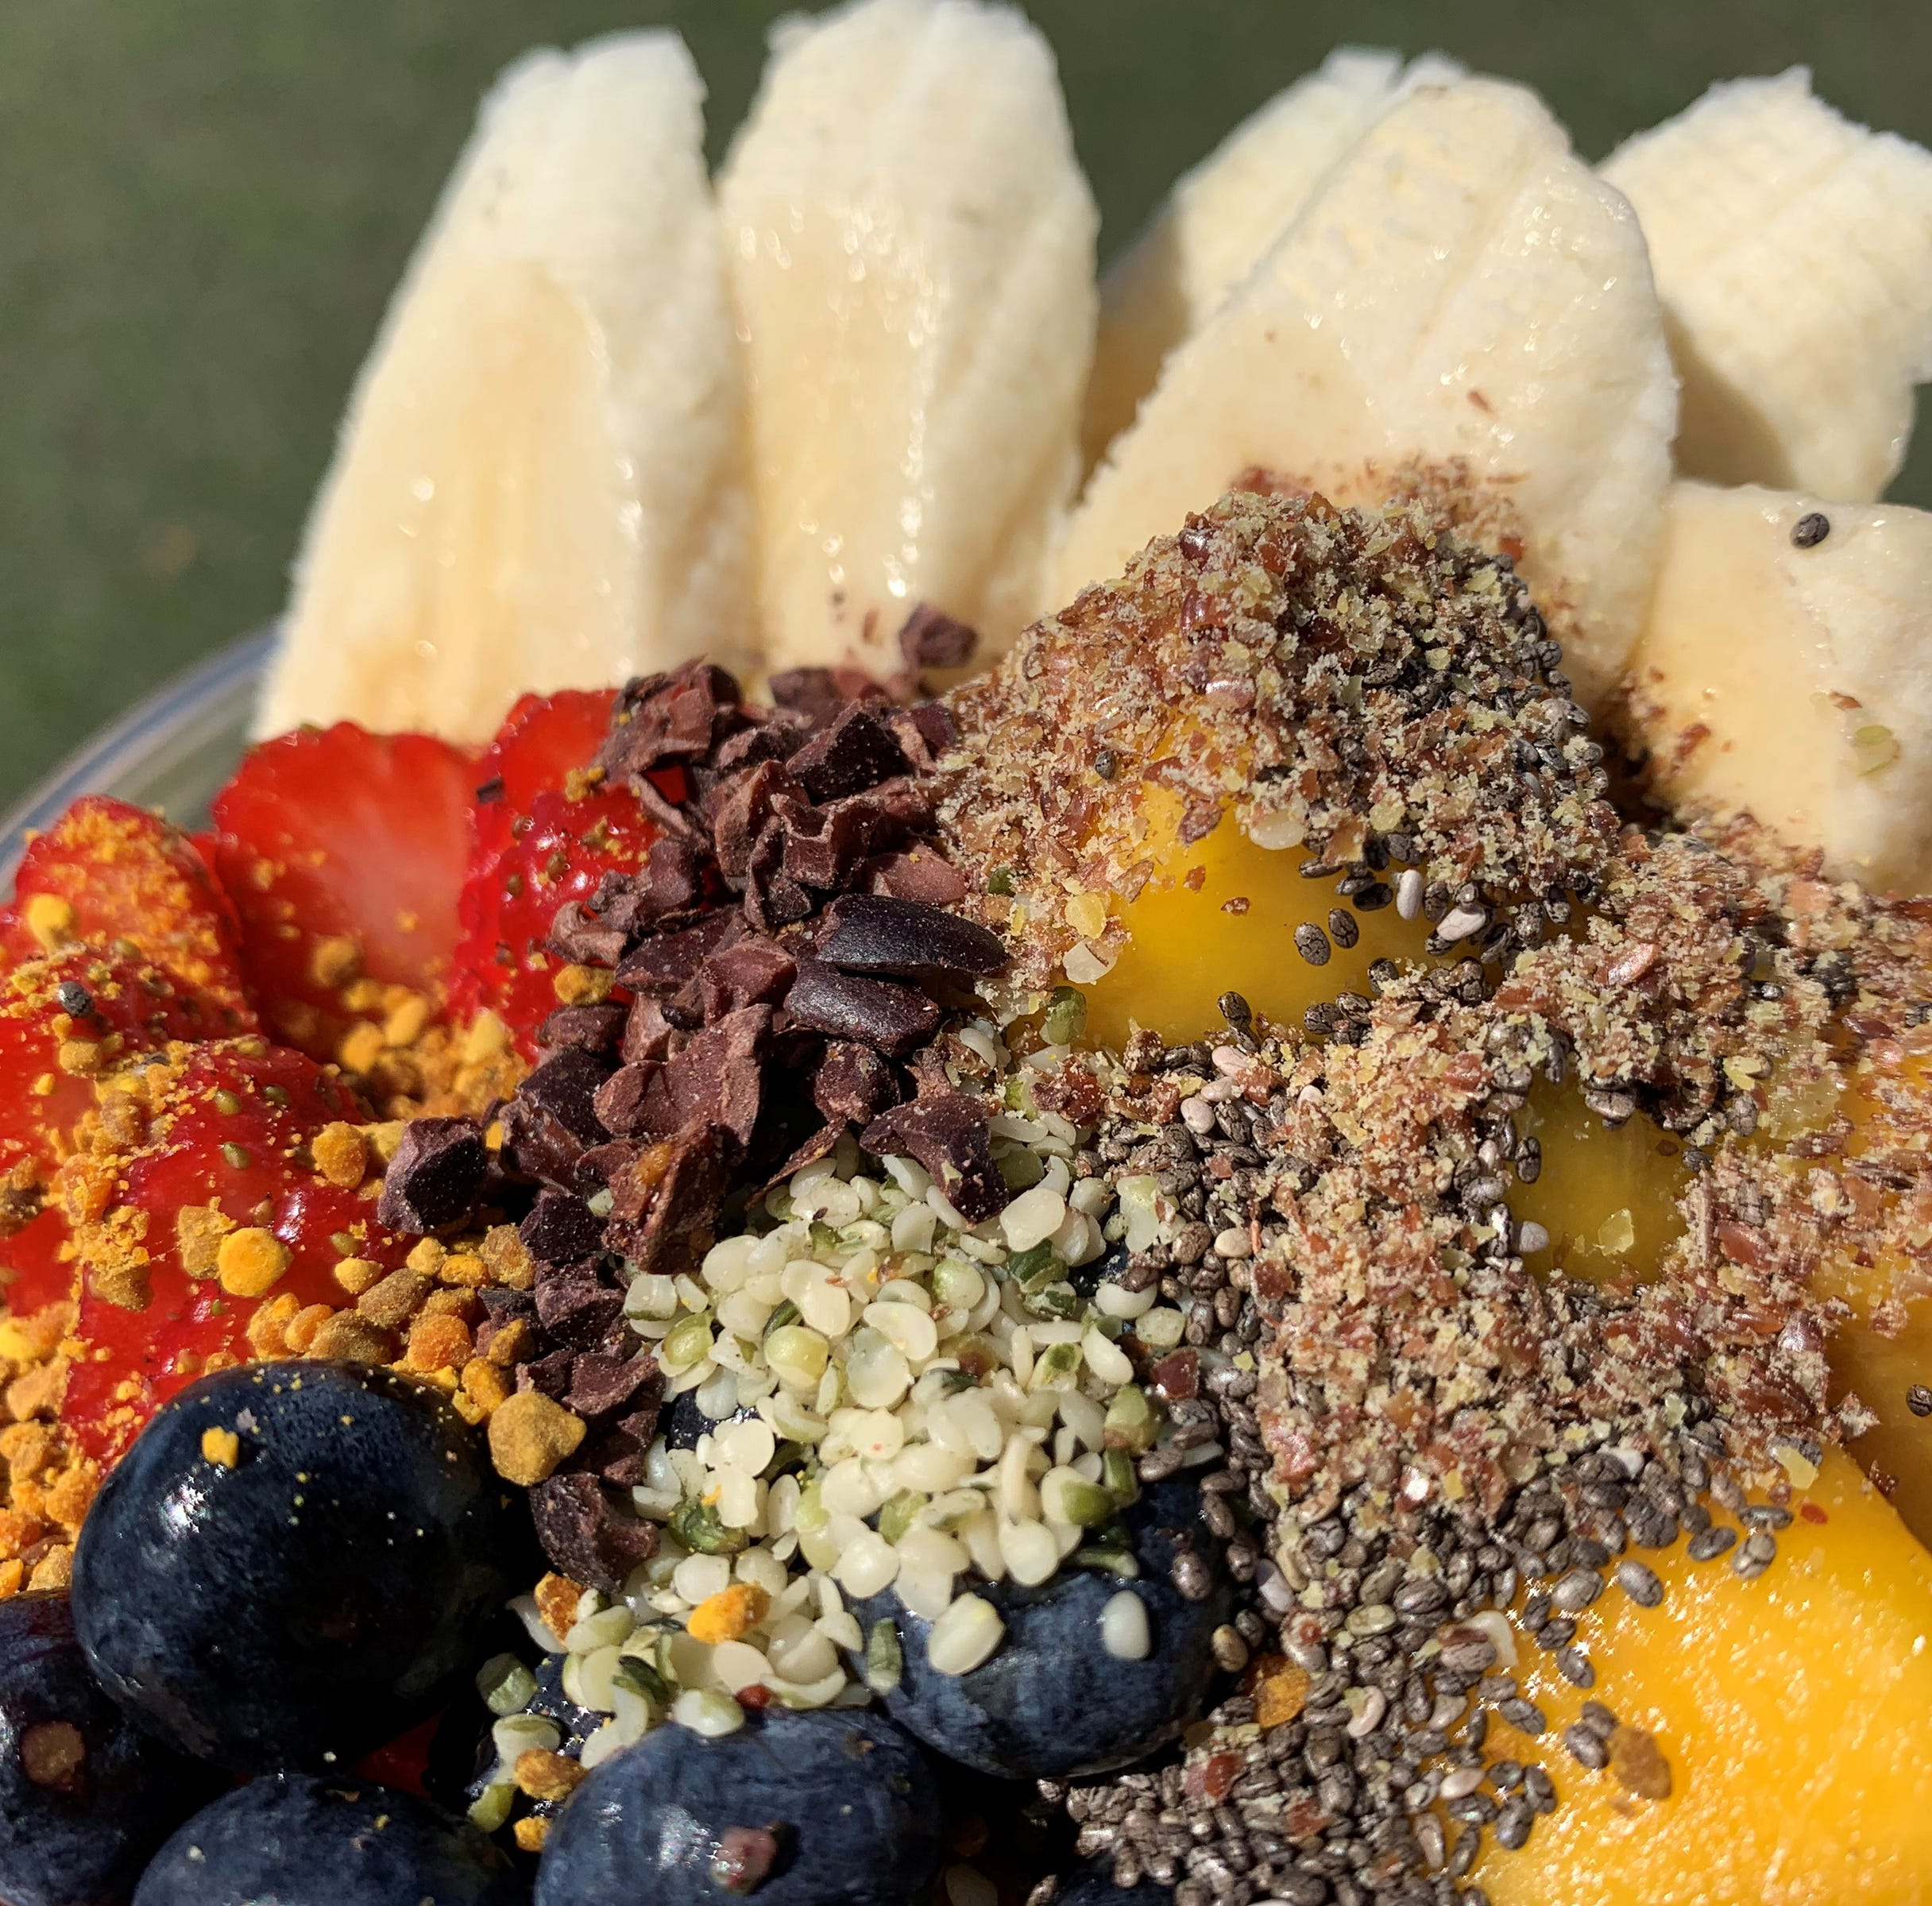 Food Finds: This healthy dessert will 'bowl' you over